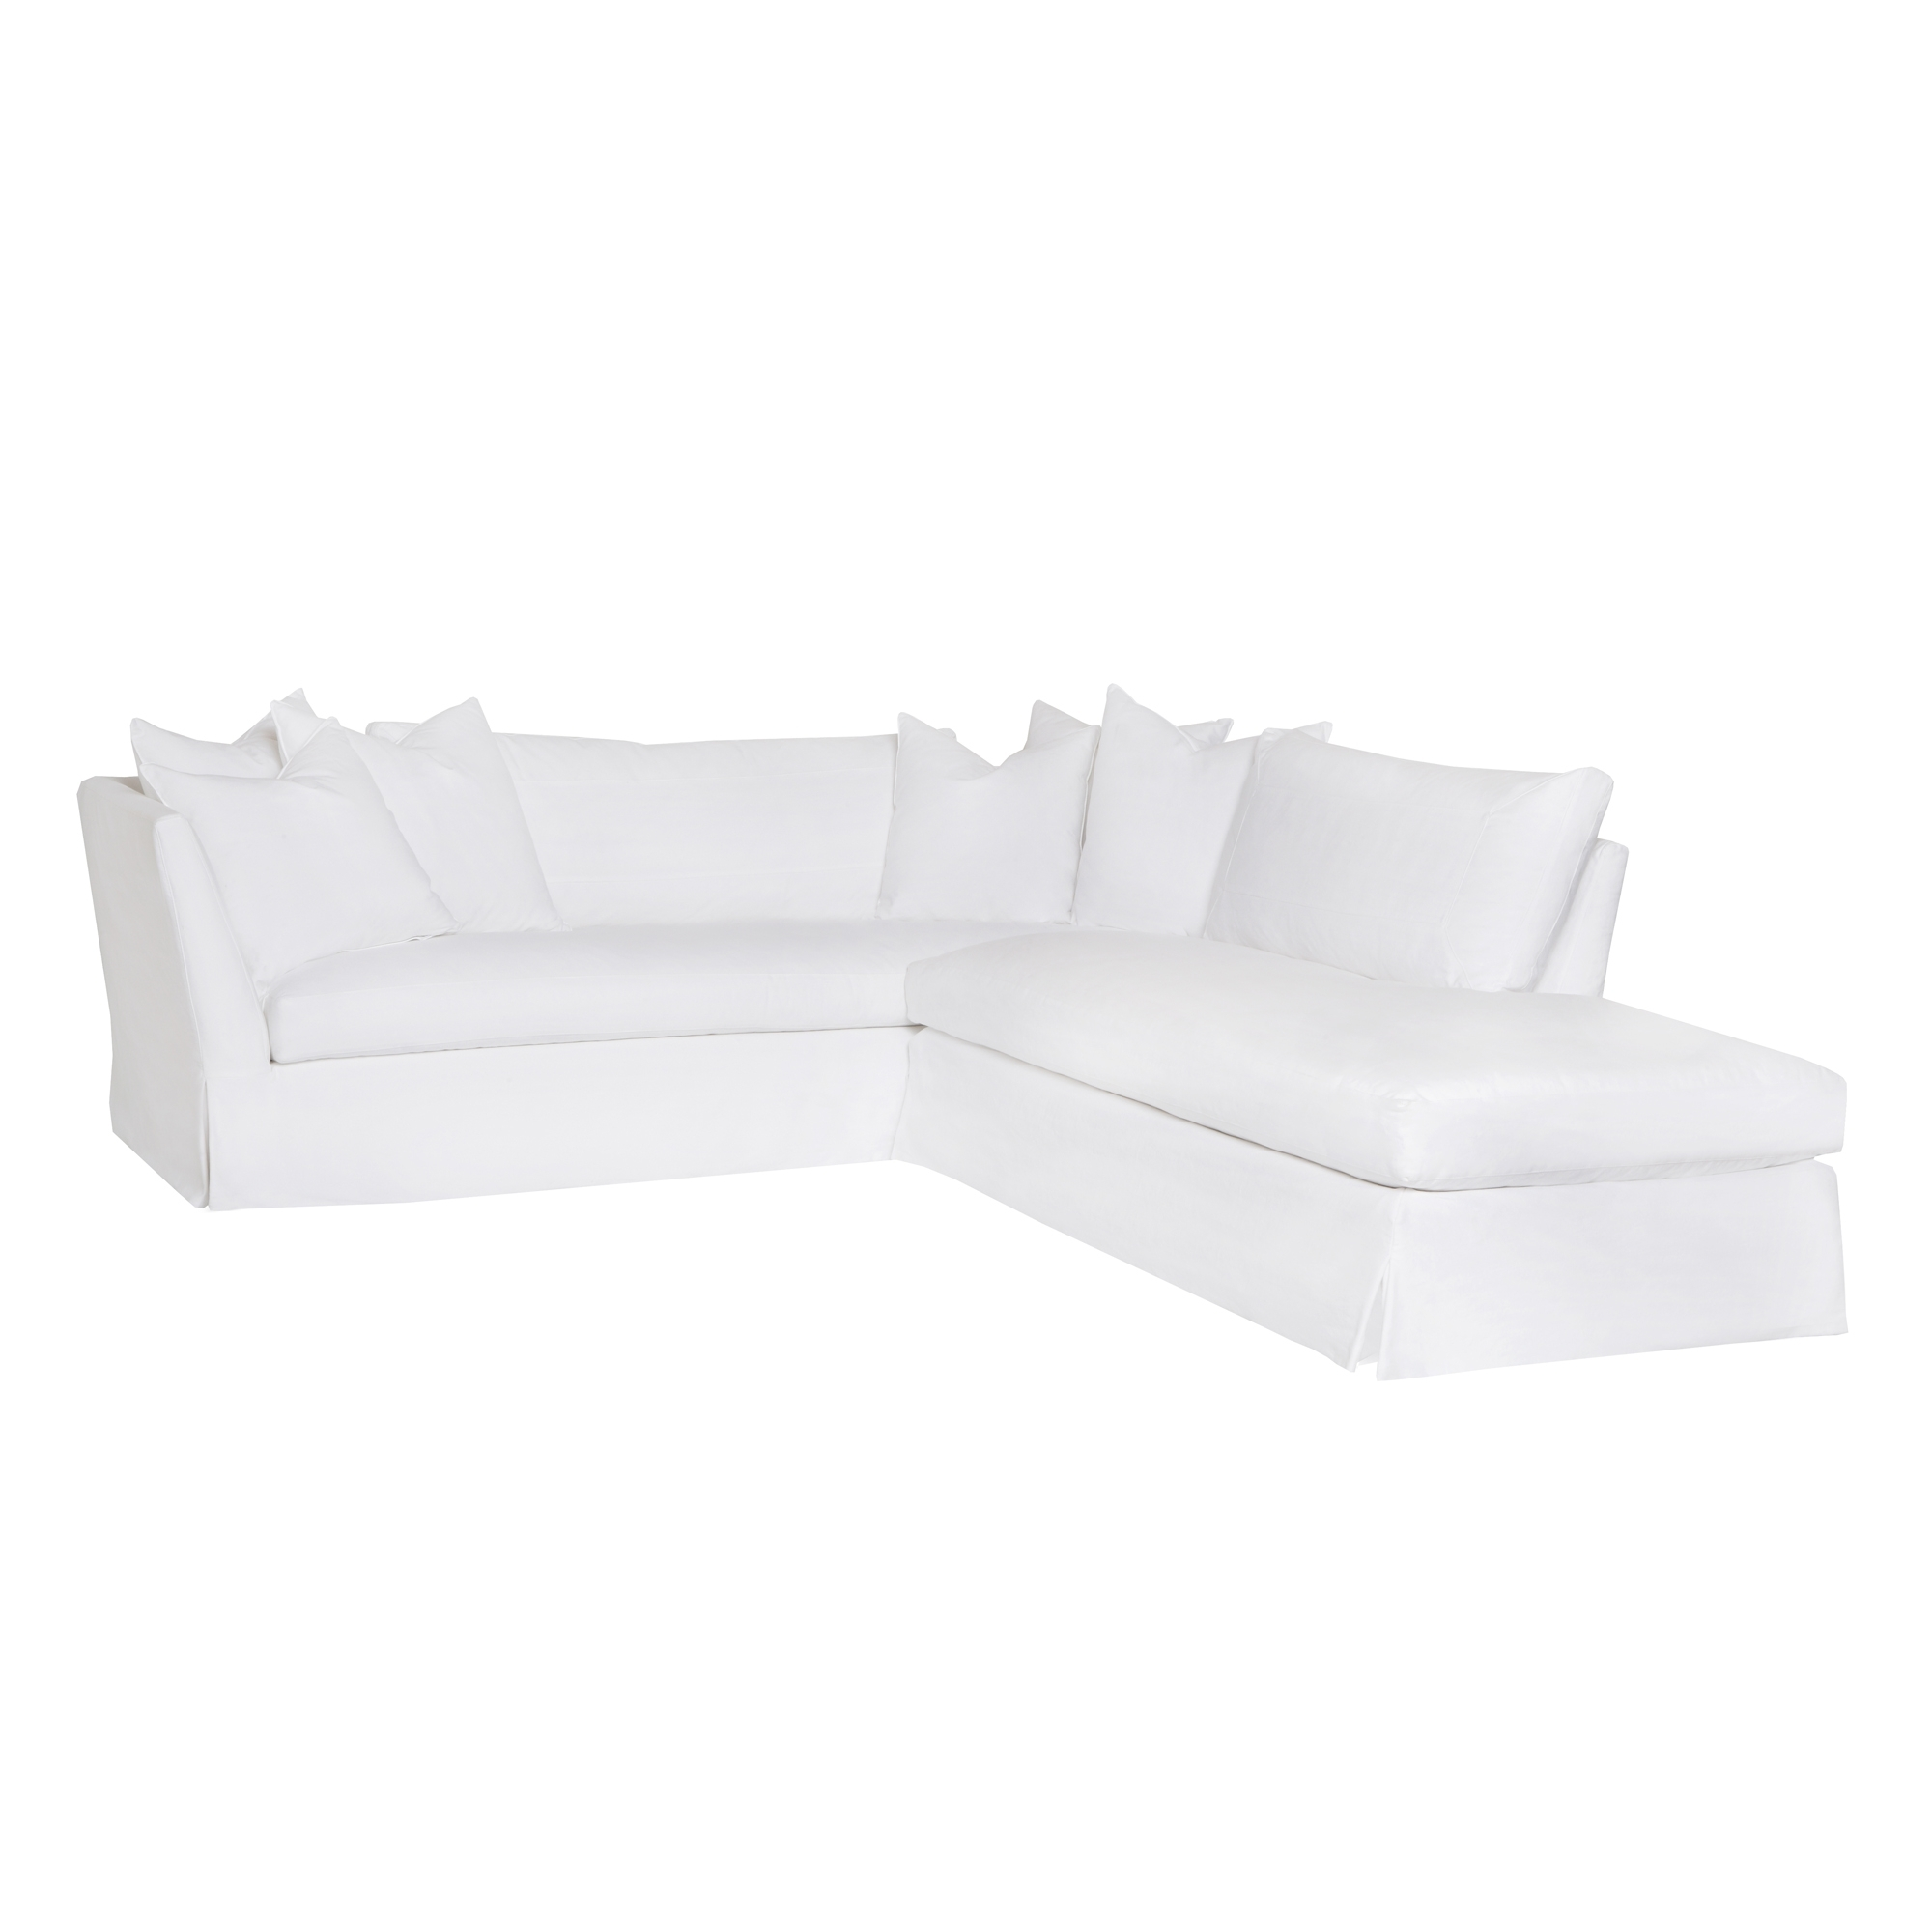 Villa Vici Contemporary Furniture Store And pertaining to Favorite New Orleans Sectional Sofas